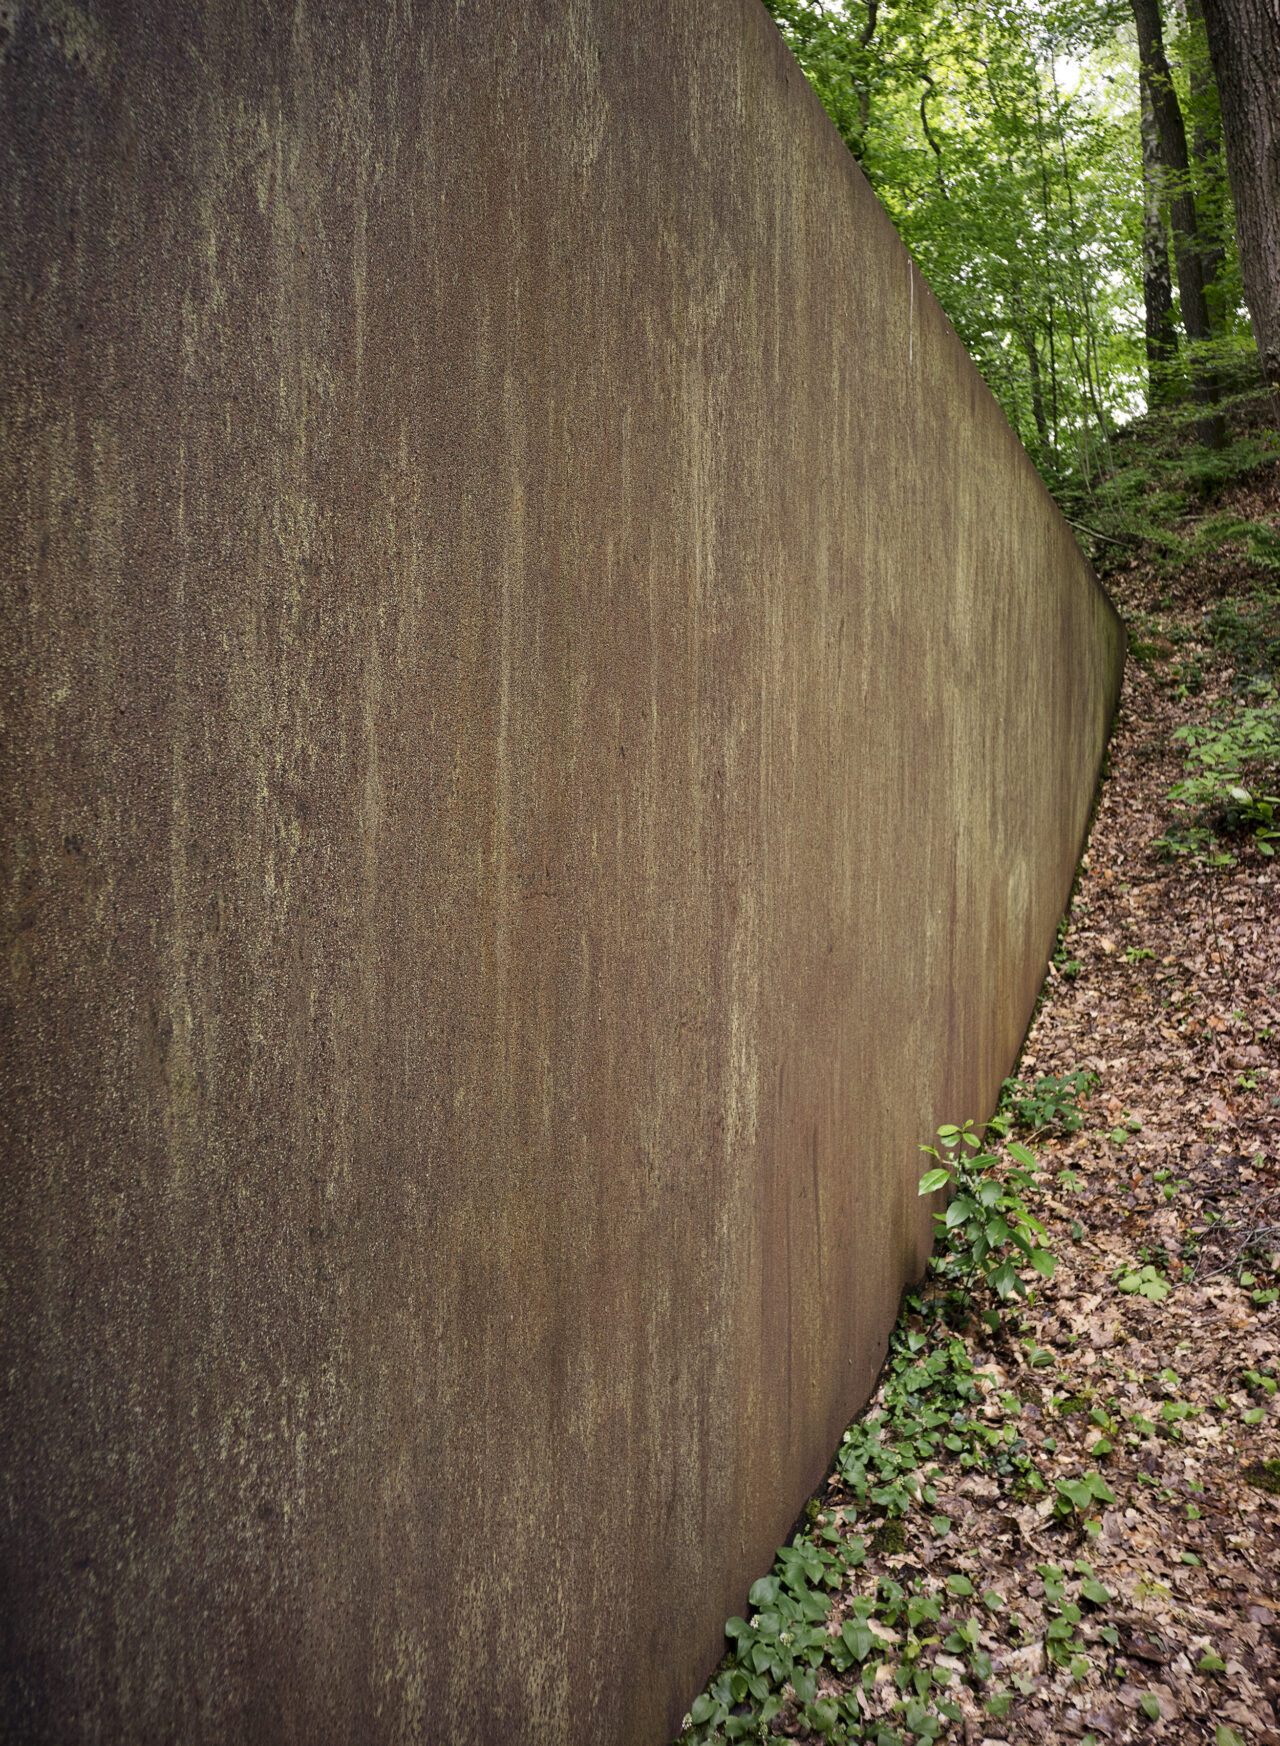 Spin out, for Robert Smithson (1972-1973), Richard Serra